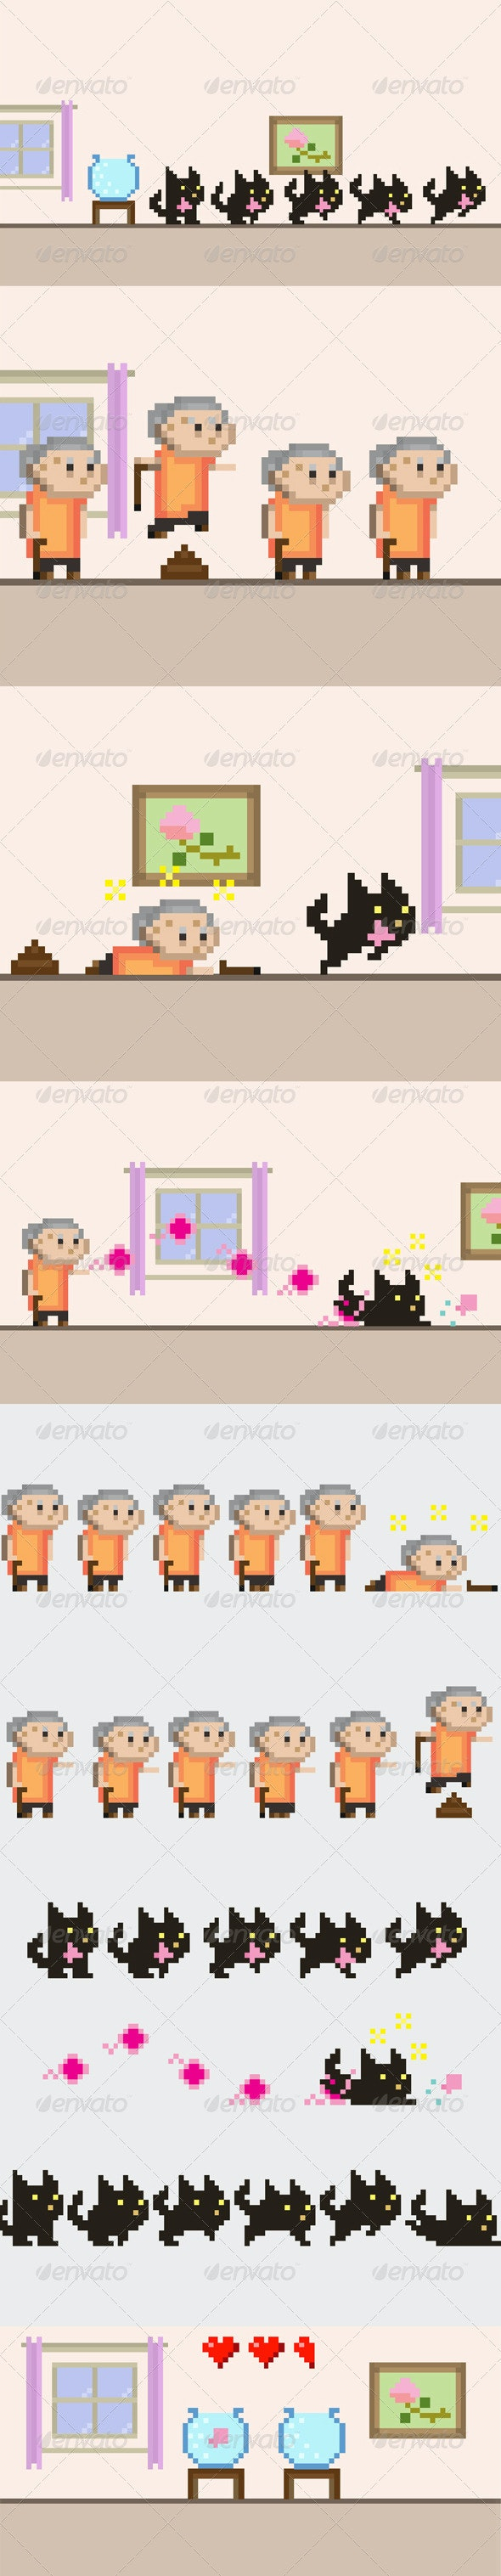 Grandma VS Black Cat Sprite Sheet - Sprites Game Assets